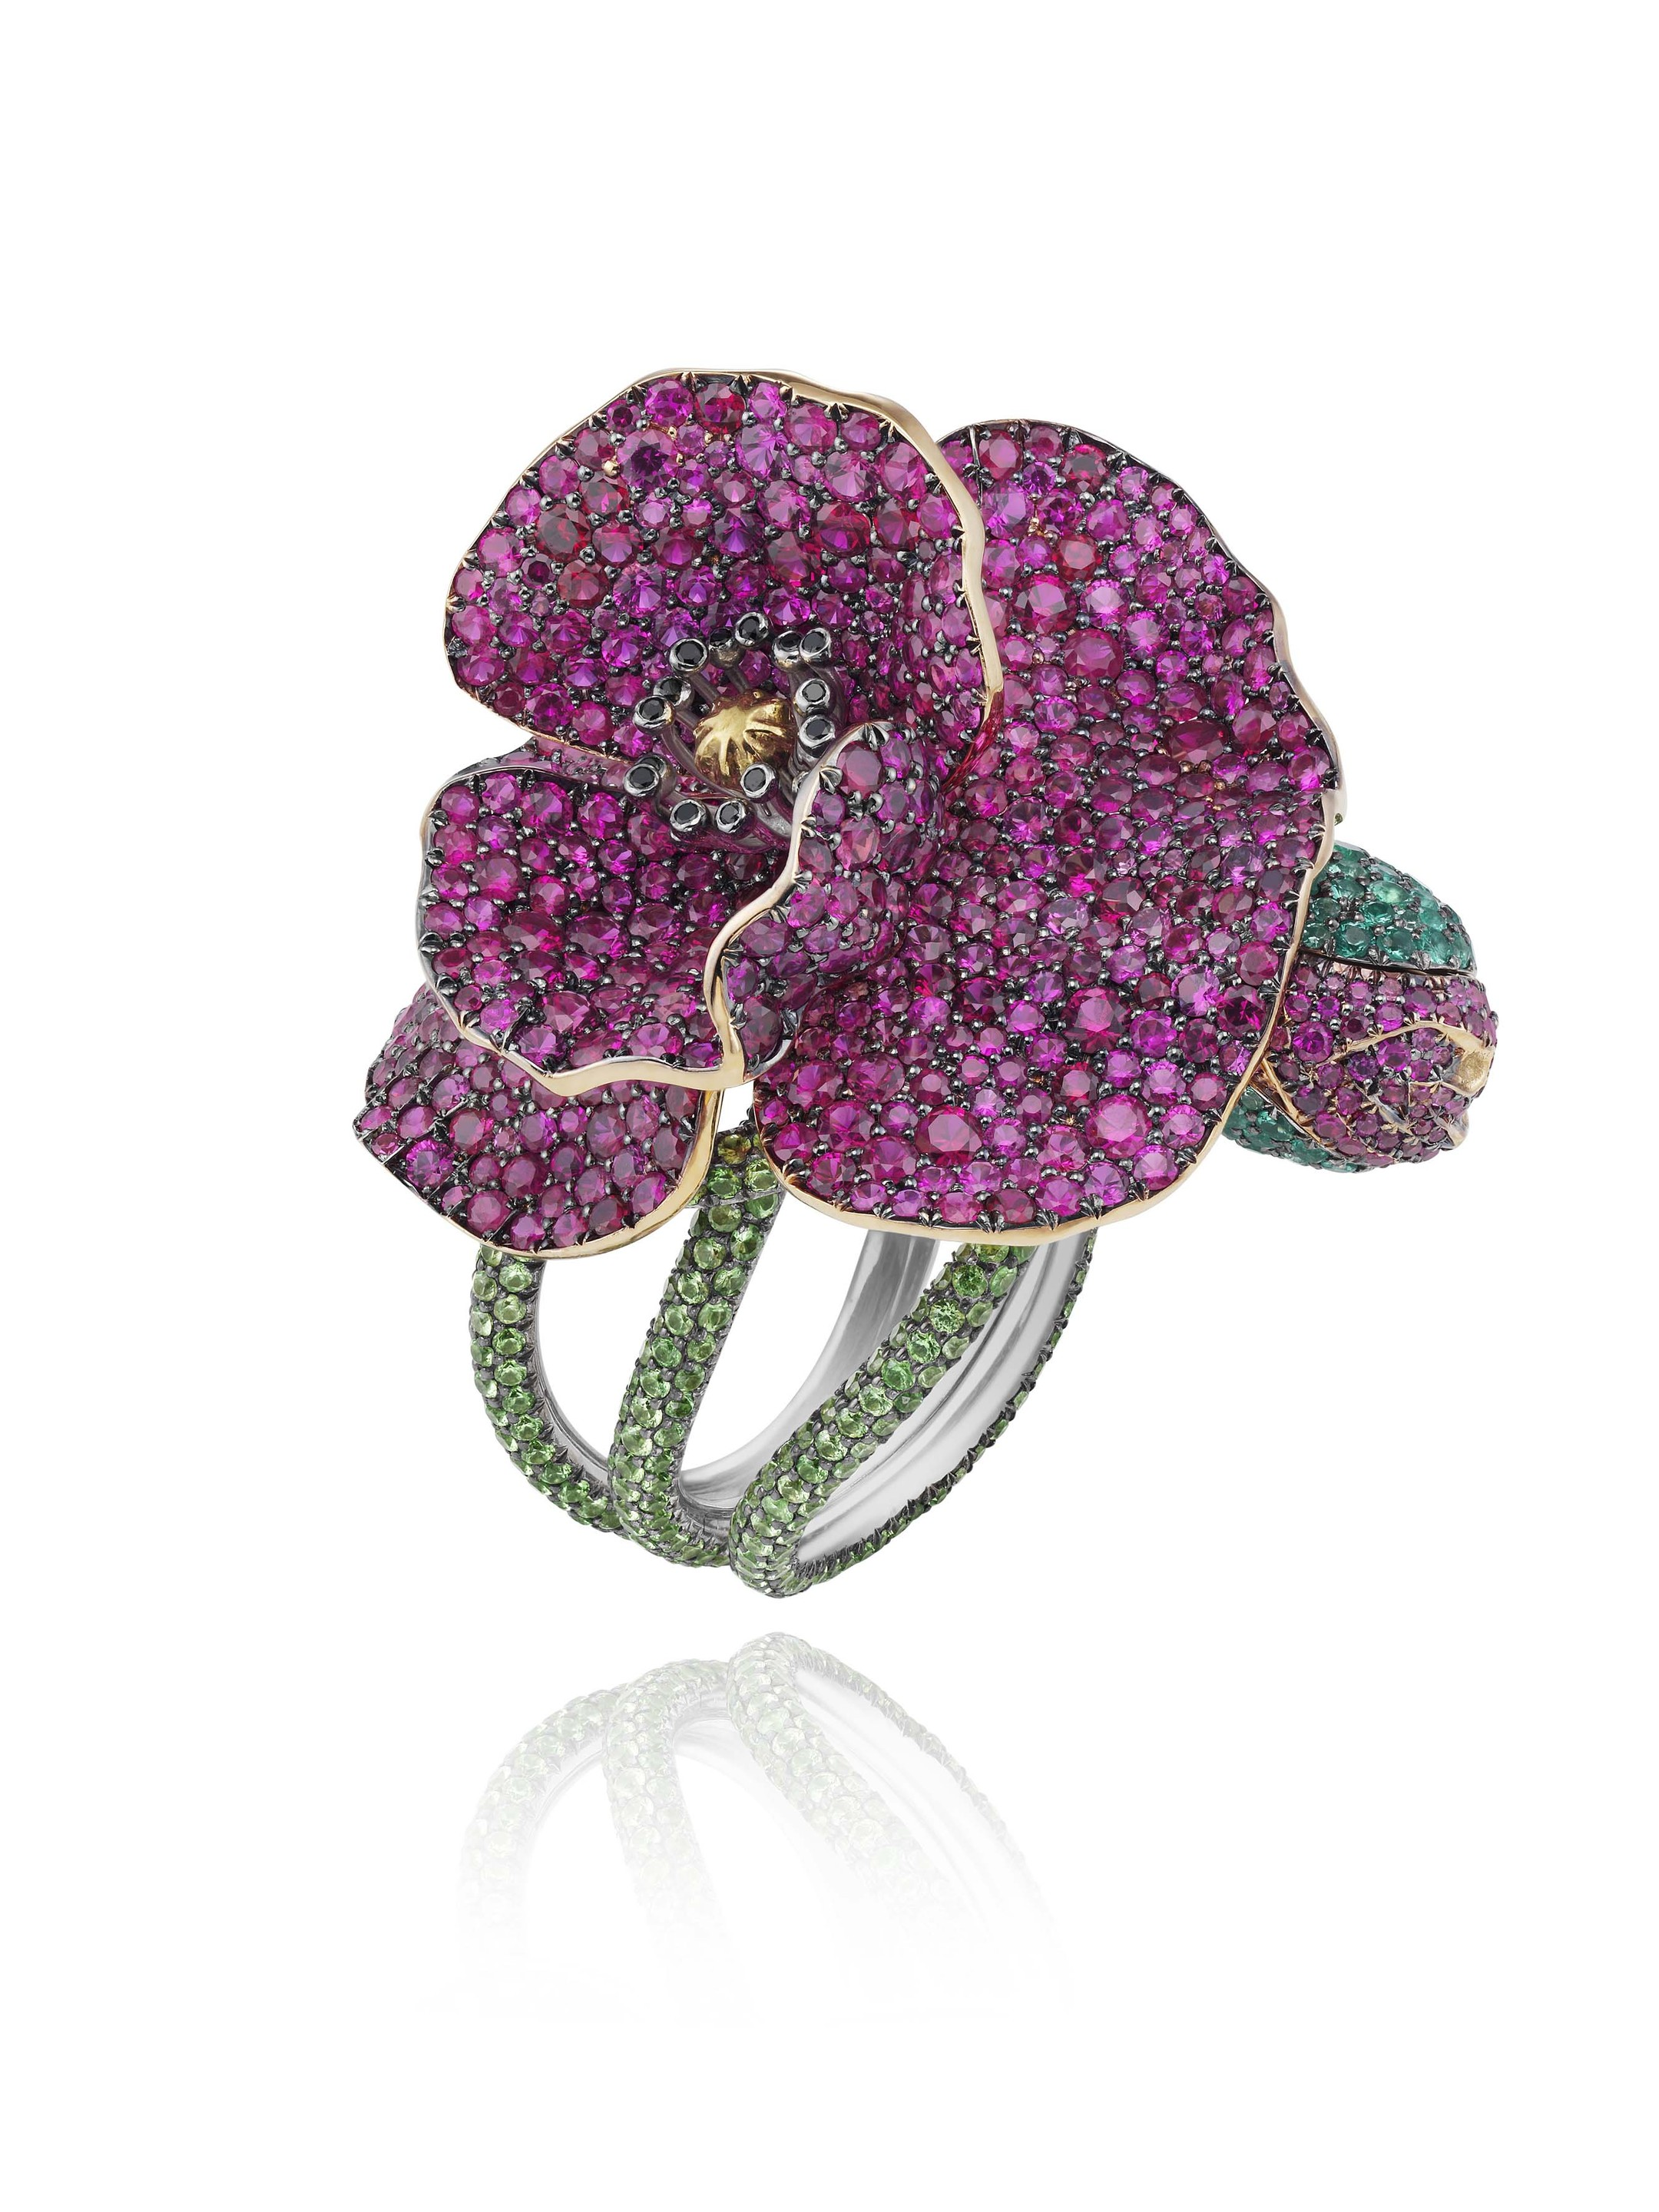 829236-9001 Poppy Ring  from the Red Carpet Collection 2013 whiteChopard.jpg